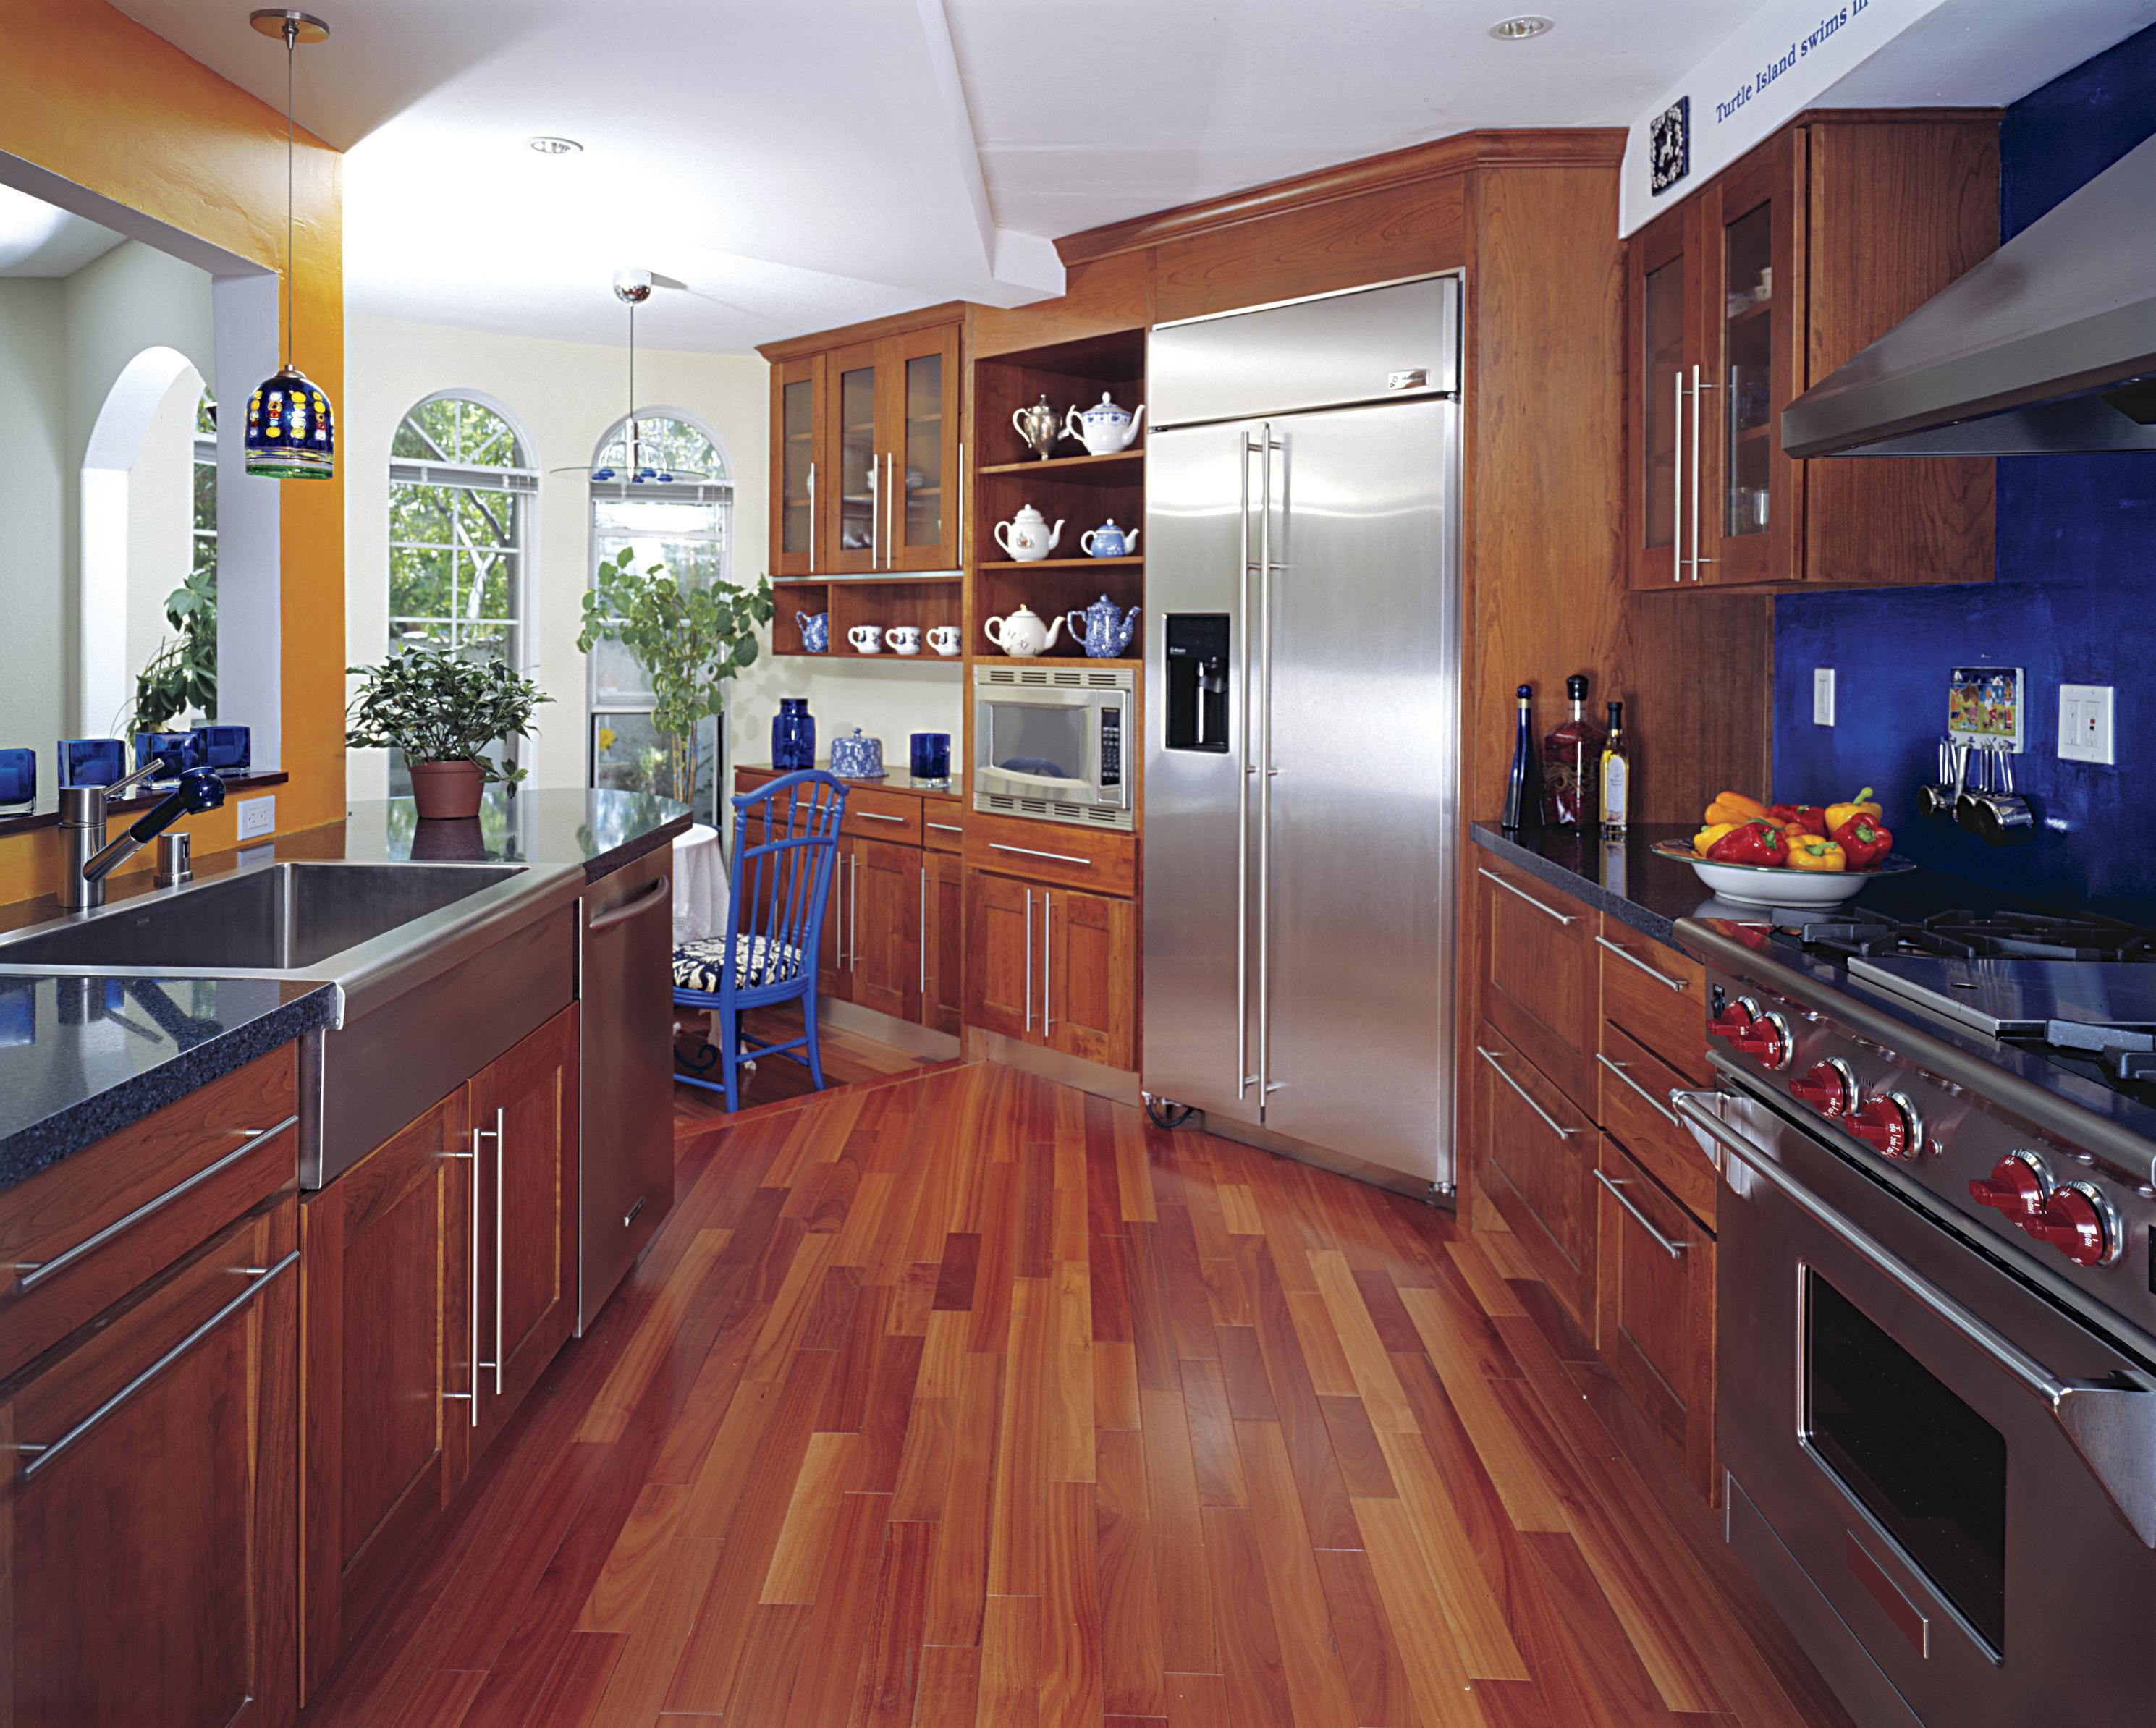 unfinished hardwood flooring for sale of hardwood floor in a kitchen is this allowed throughout 186828472 56a49f3a5f9b58b7d0d7e142